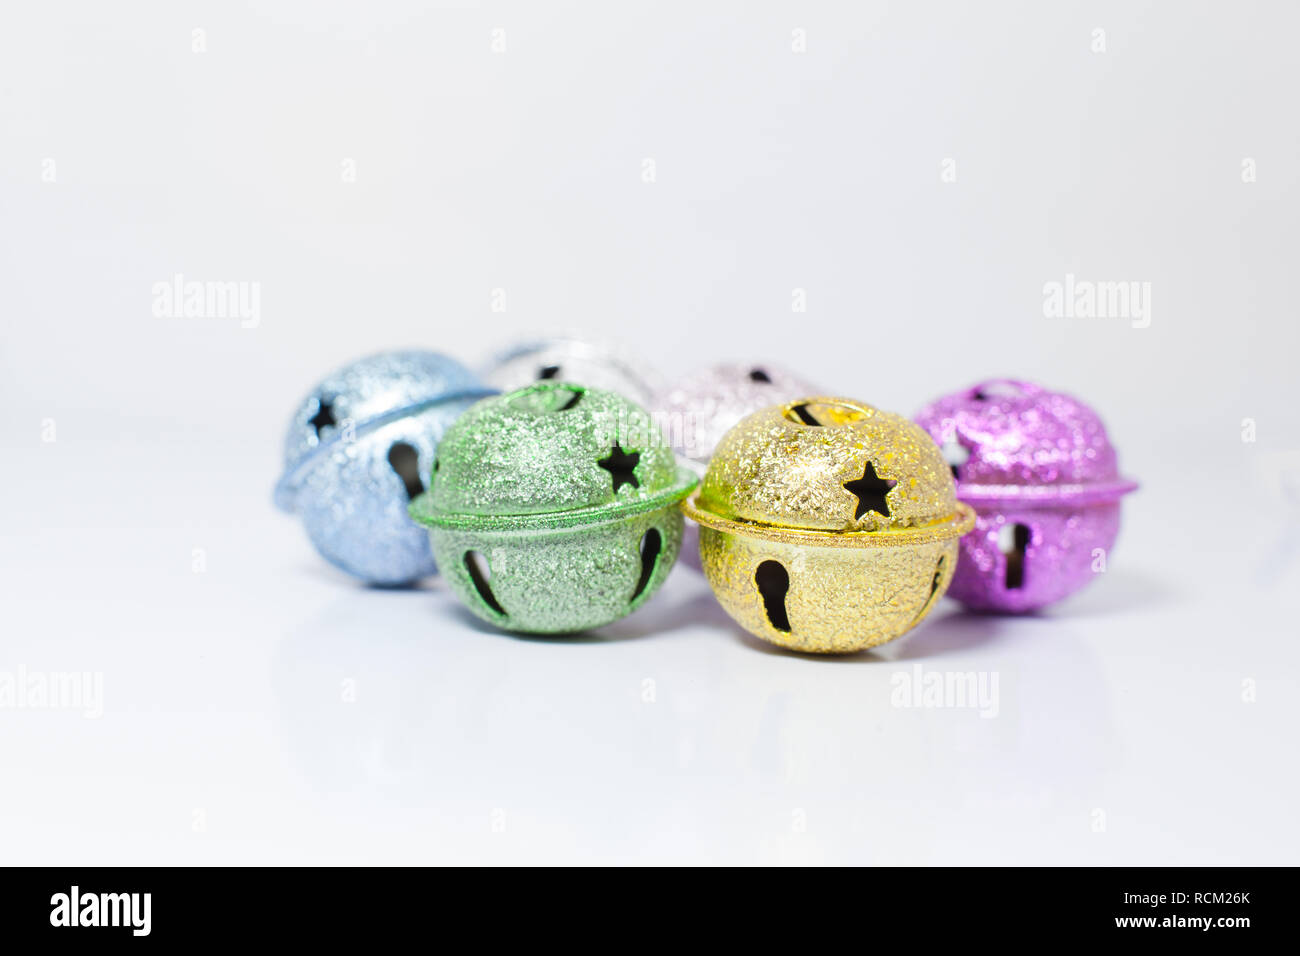 Group of Colorful painted pet small bells for cats and dogs on white background. Pet Shopping Product, Accessories, Animal Tracing Tools, Objects, Dec - Stock Image